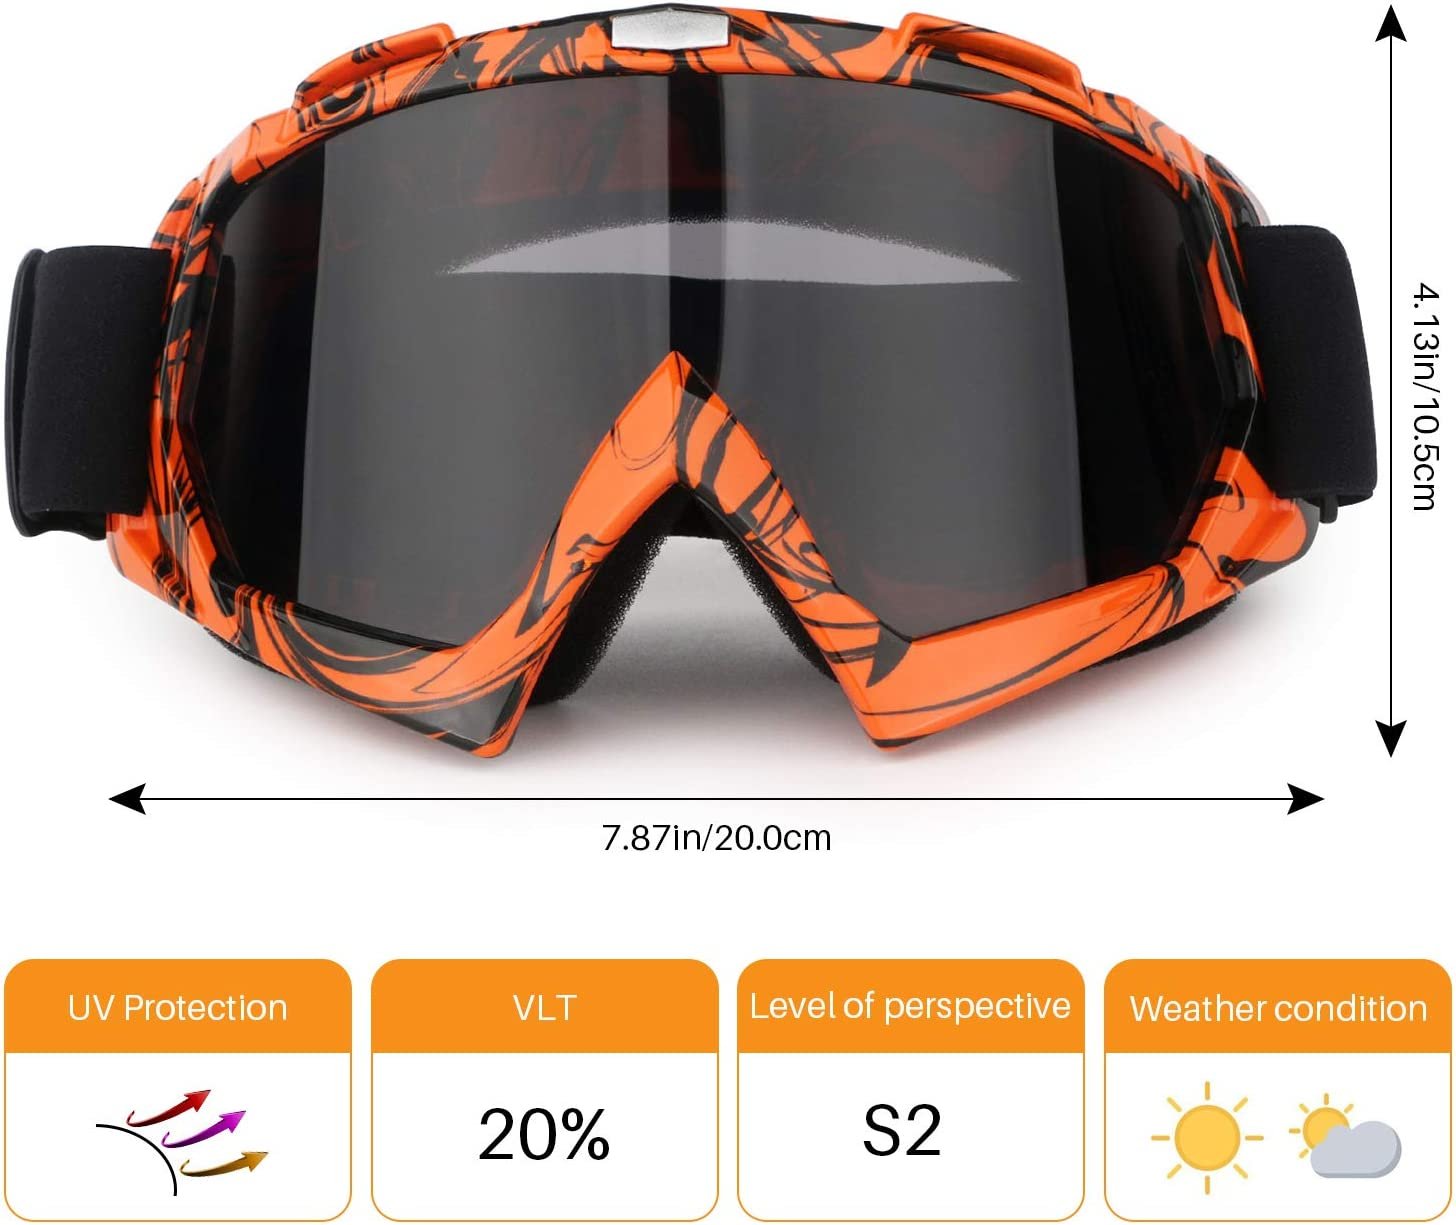 Motorcycle Goggles ATV Dirt Bike Anti Scratch Motocross UV400 Protect Bendable Eyewear Off Road Dust proof Anti Fog Riding Goggles with Adjustable Strap /&Color Lens for Adult Youth